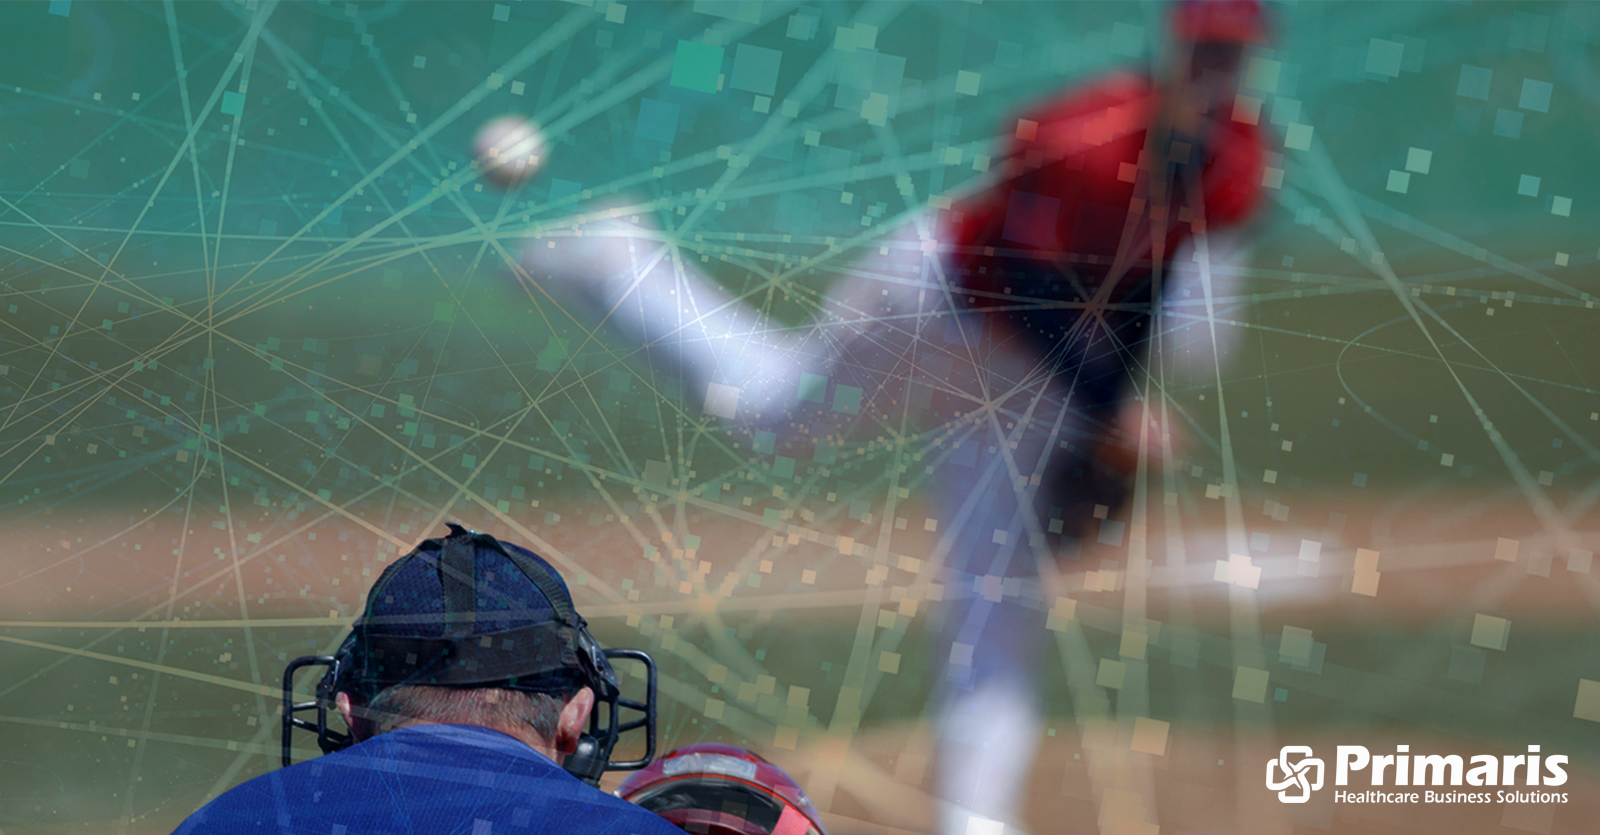 Baseball pitcher throwing the ball to the plate illustrates the flood of data coming at healthcare organizations and providers as a result of the emphasis on value-based care.